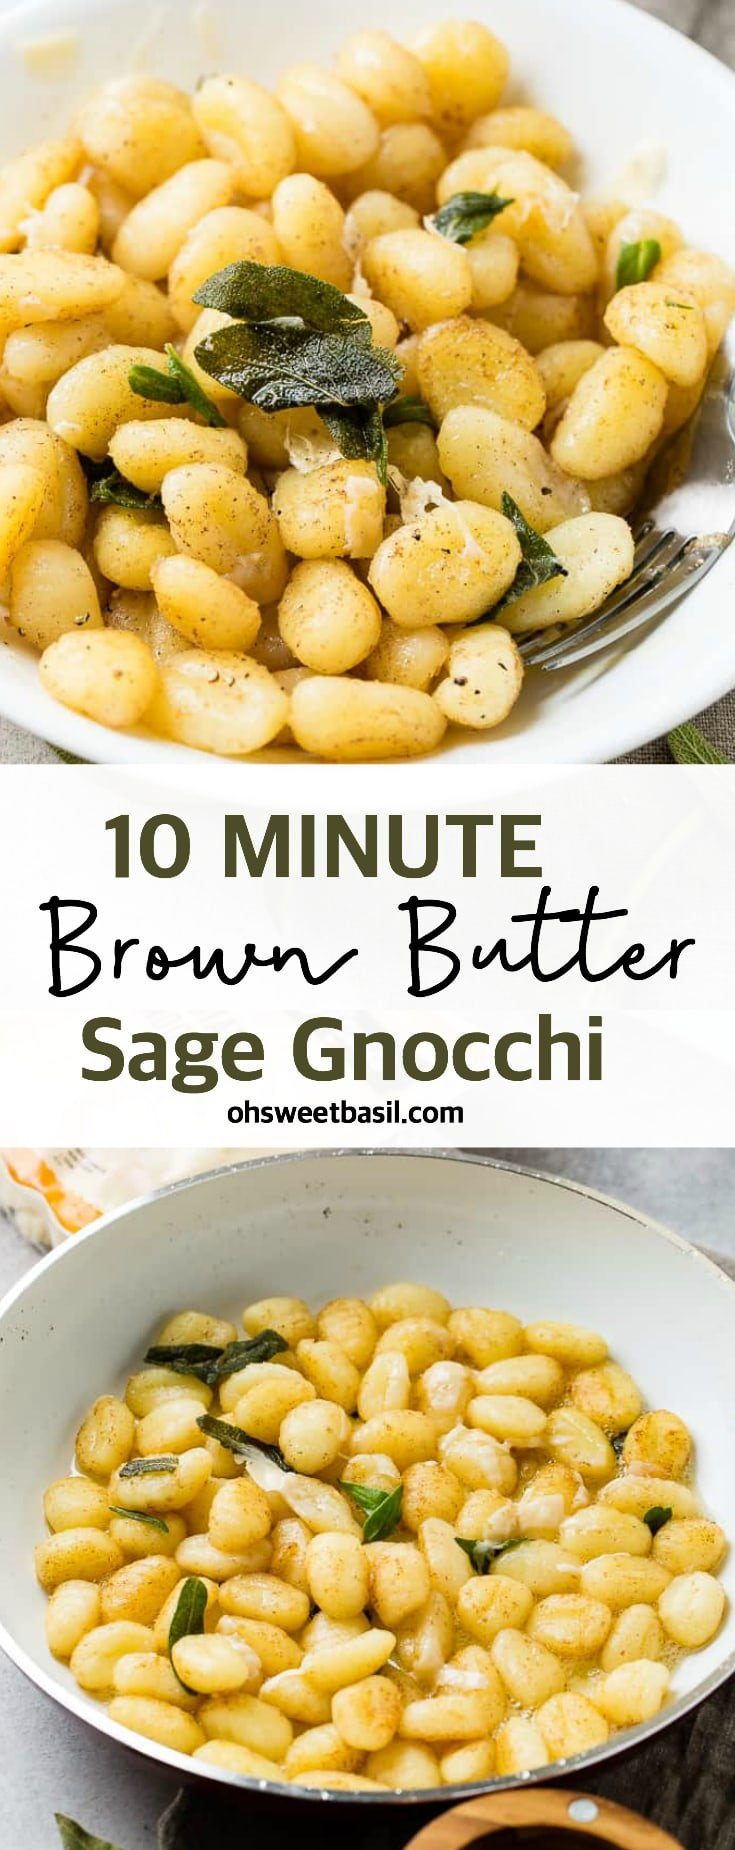 A white skillet with brown butter, gnocchi, and fresh sage to make a yummy 10 minute brown butter sage gnocchi recipe